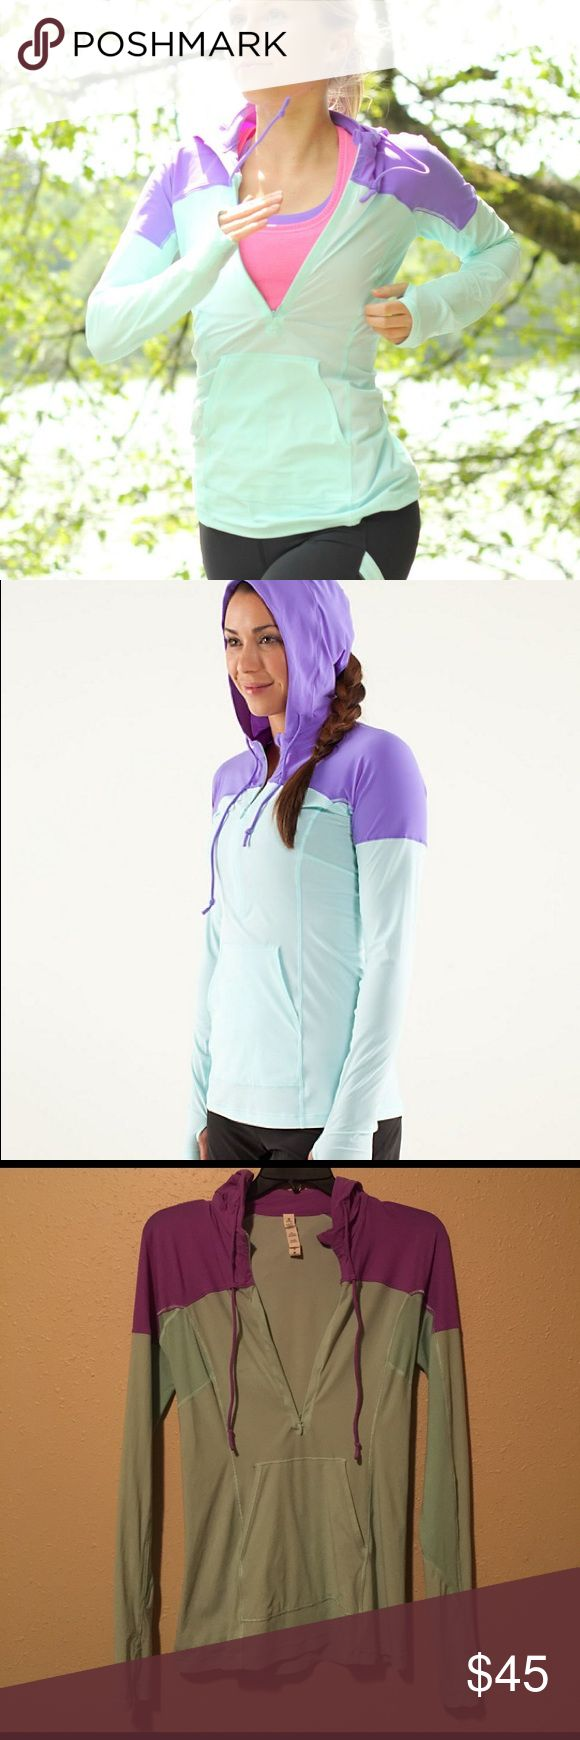 Lululemon Runbeam Hoodie Size 4 Lululemon Runbeam hoodie size 4. Aqua and purple color. Excellent condition, has a small dark spot on the chest (pictured). Just bought this and love it but don't have time to work out the small stain. Has thumbholes and a hole in the hood for your ponytail. Aquelu 4 way stretch fabric Offset seams under the arms help keep sensitive skin from chafing  Integrated drawcord system keeps them in place Flip up the sleeve to show reflective detailing kangaroo pocket…